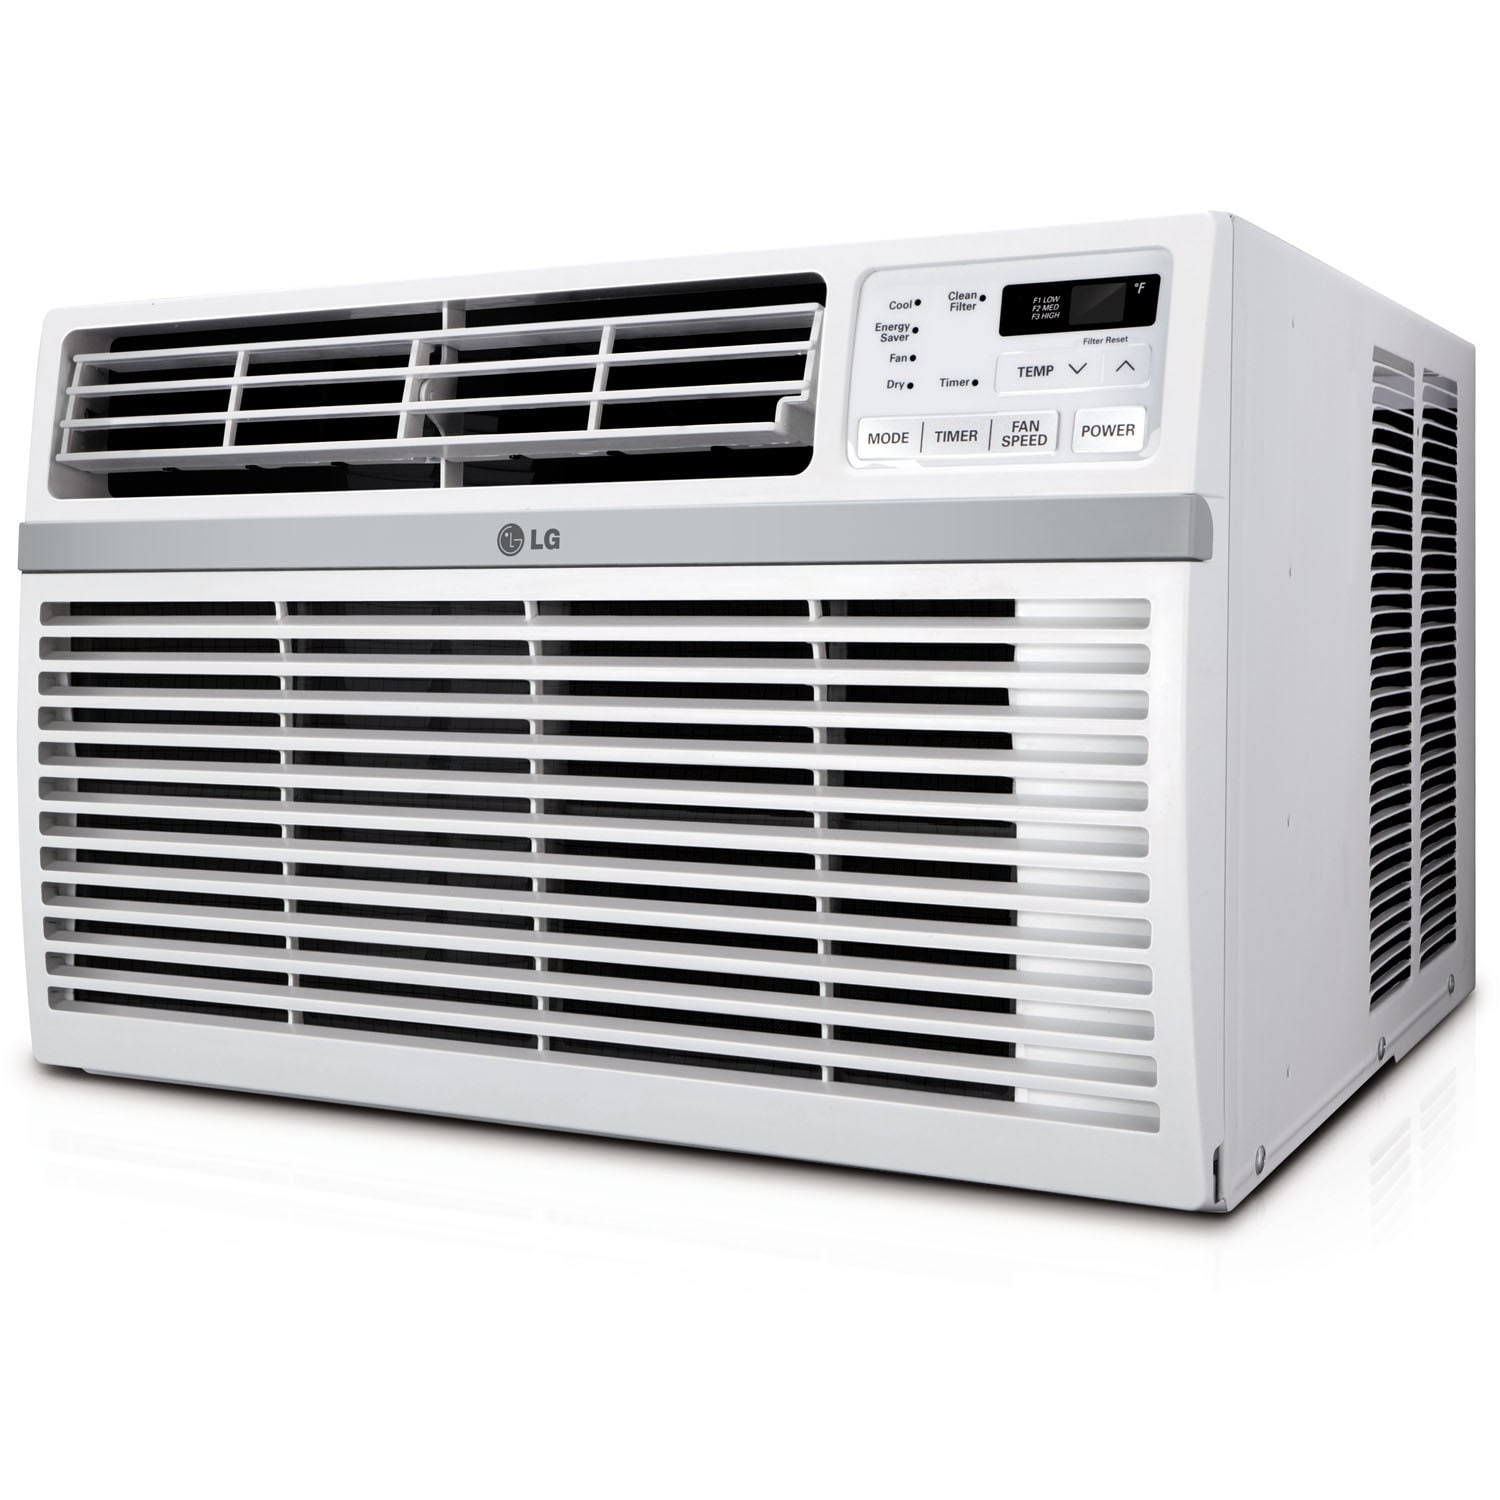 LG LW1216ER 12,000 BTU 115V Window-mounted Air Conditioner w